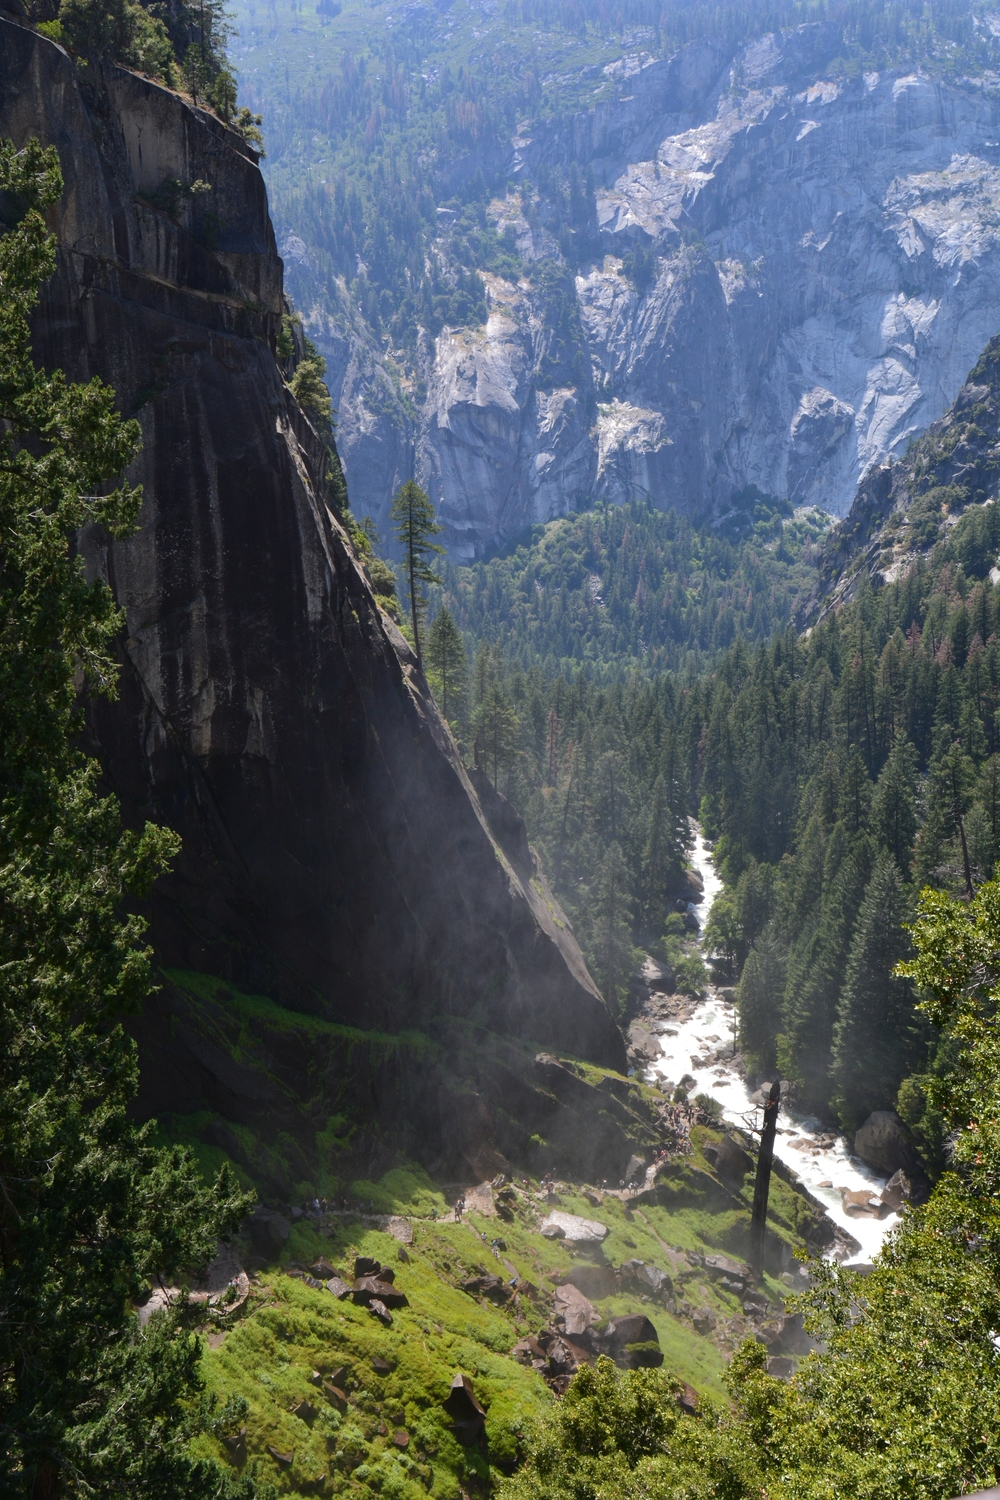 The view from the top of Vernal Falls, looking at the Mist Trail